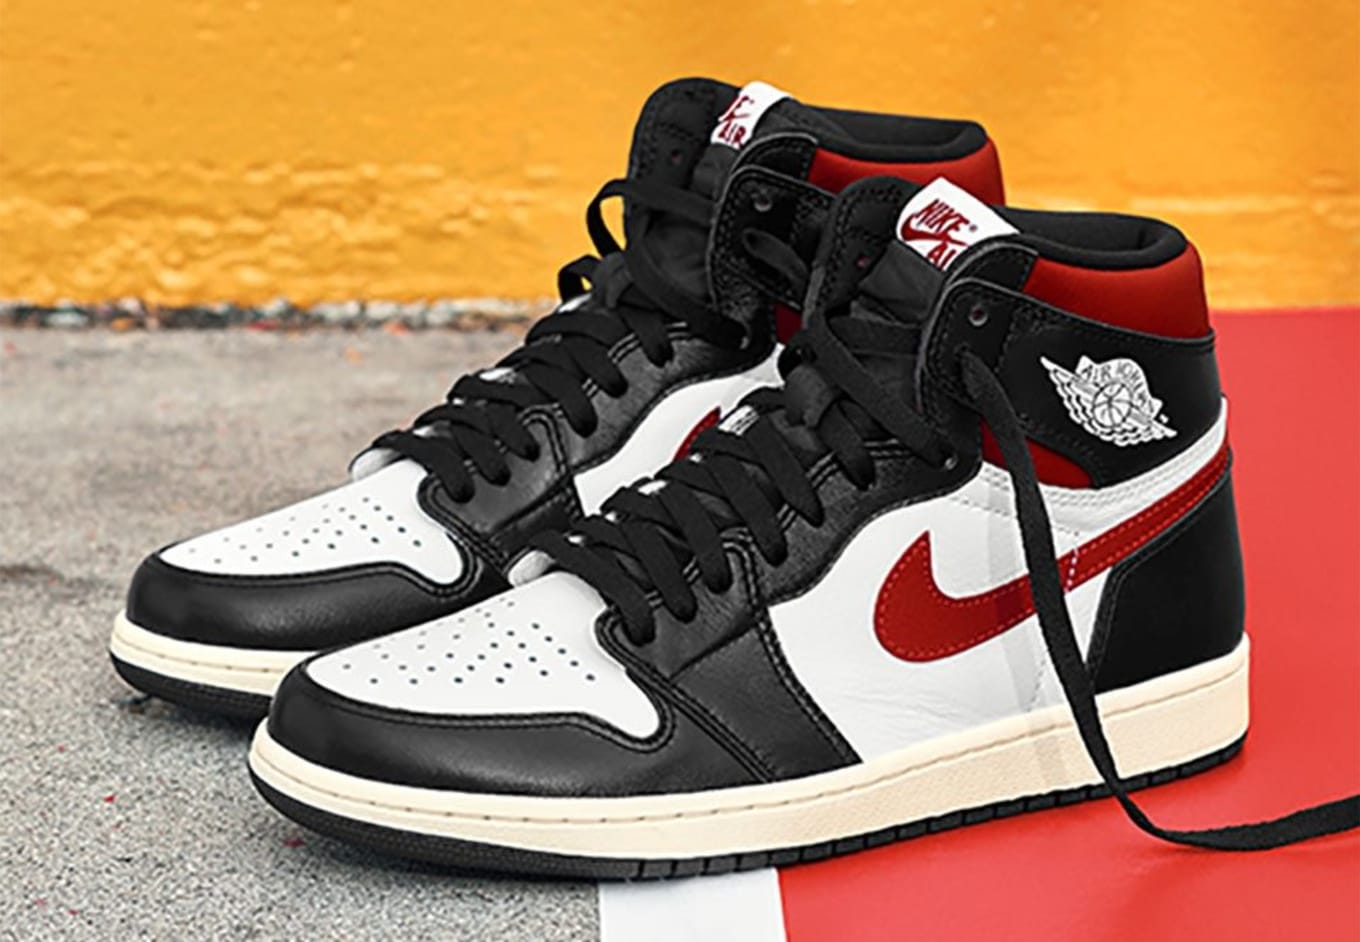 free shipping 5384d 88ebf Air Jordan 1 Retro High OG 555088-061 Release Date Jun. 6 ...